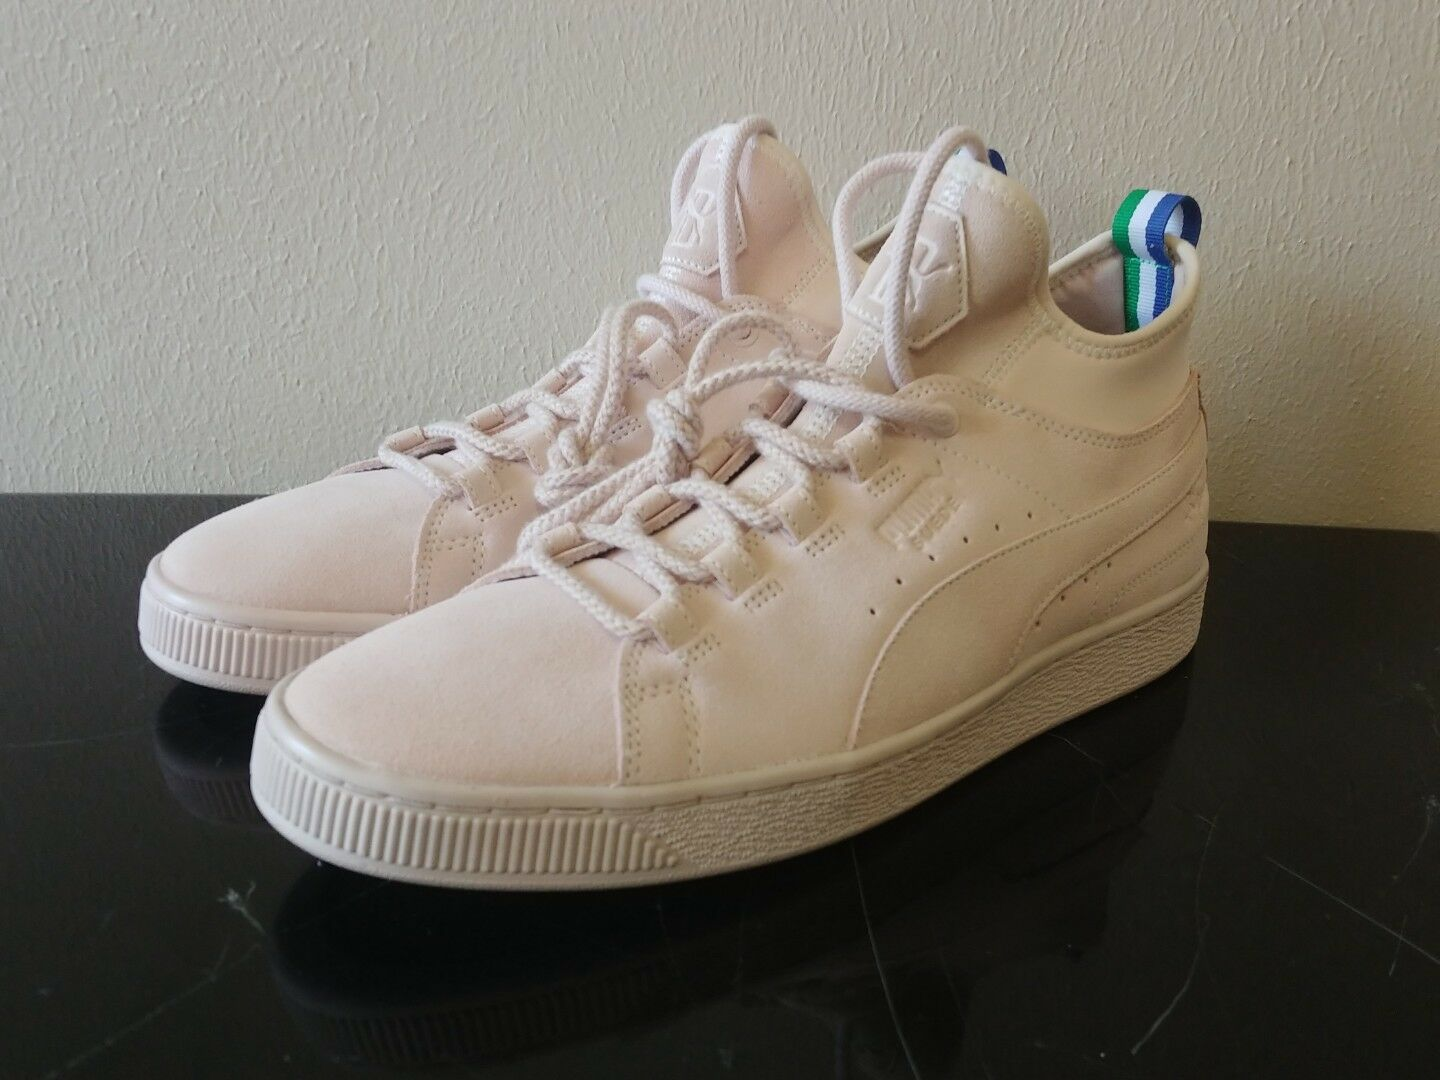 Puma Suede Mid X Big Sean Shell Pink New Men Shoes Limited Edition 366252-01